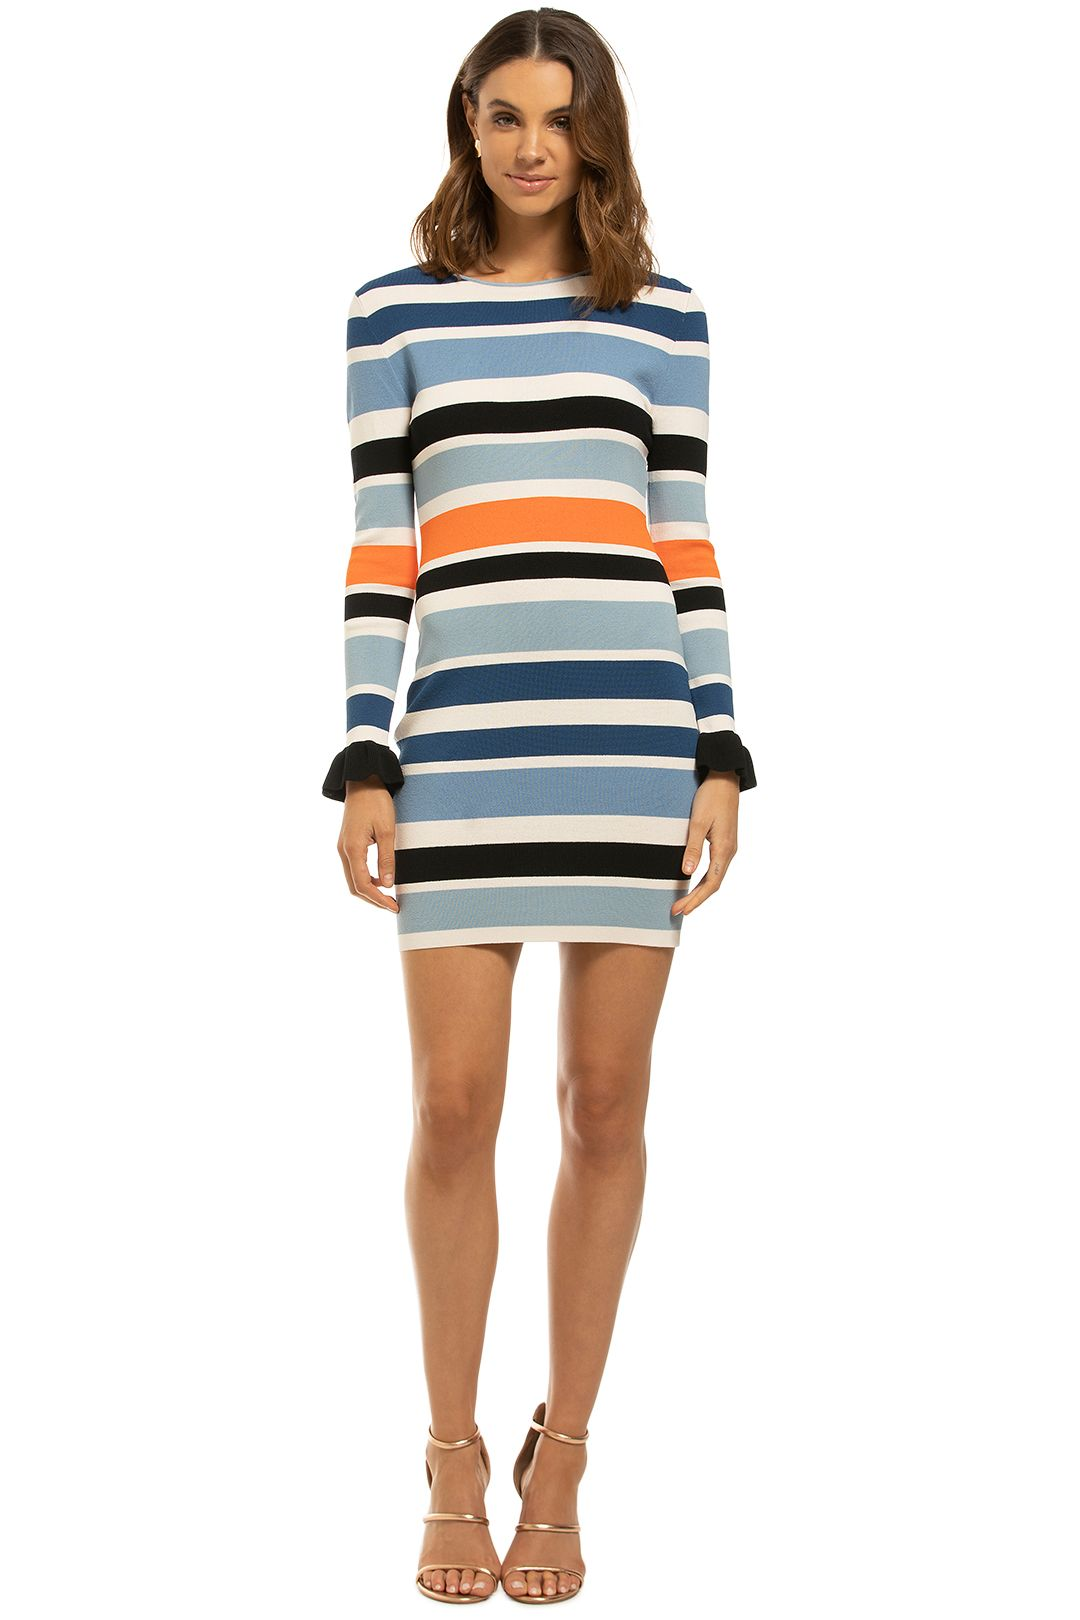 By-Johnny-Side-Line-Frill-Sleeve-Mini-Dress-Front